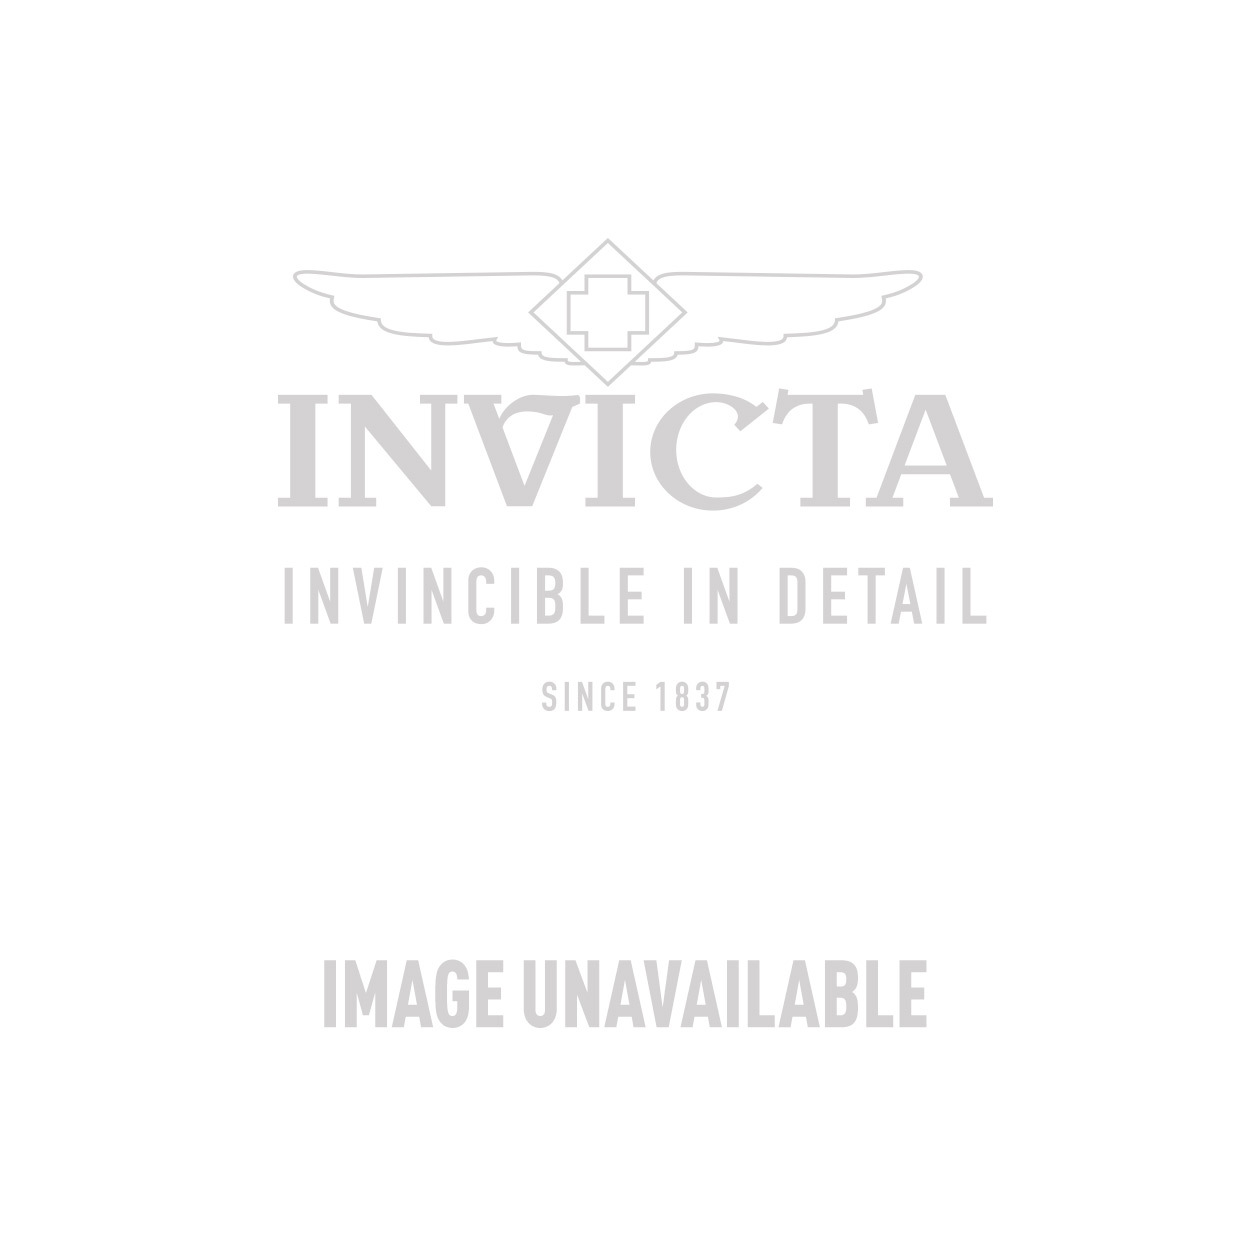 Invicta Angel Swiss Movement Quartz Watch - Gold case Stainless Steel band - Model 90255